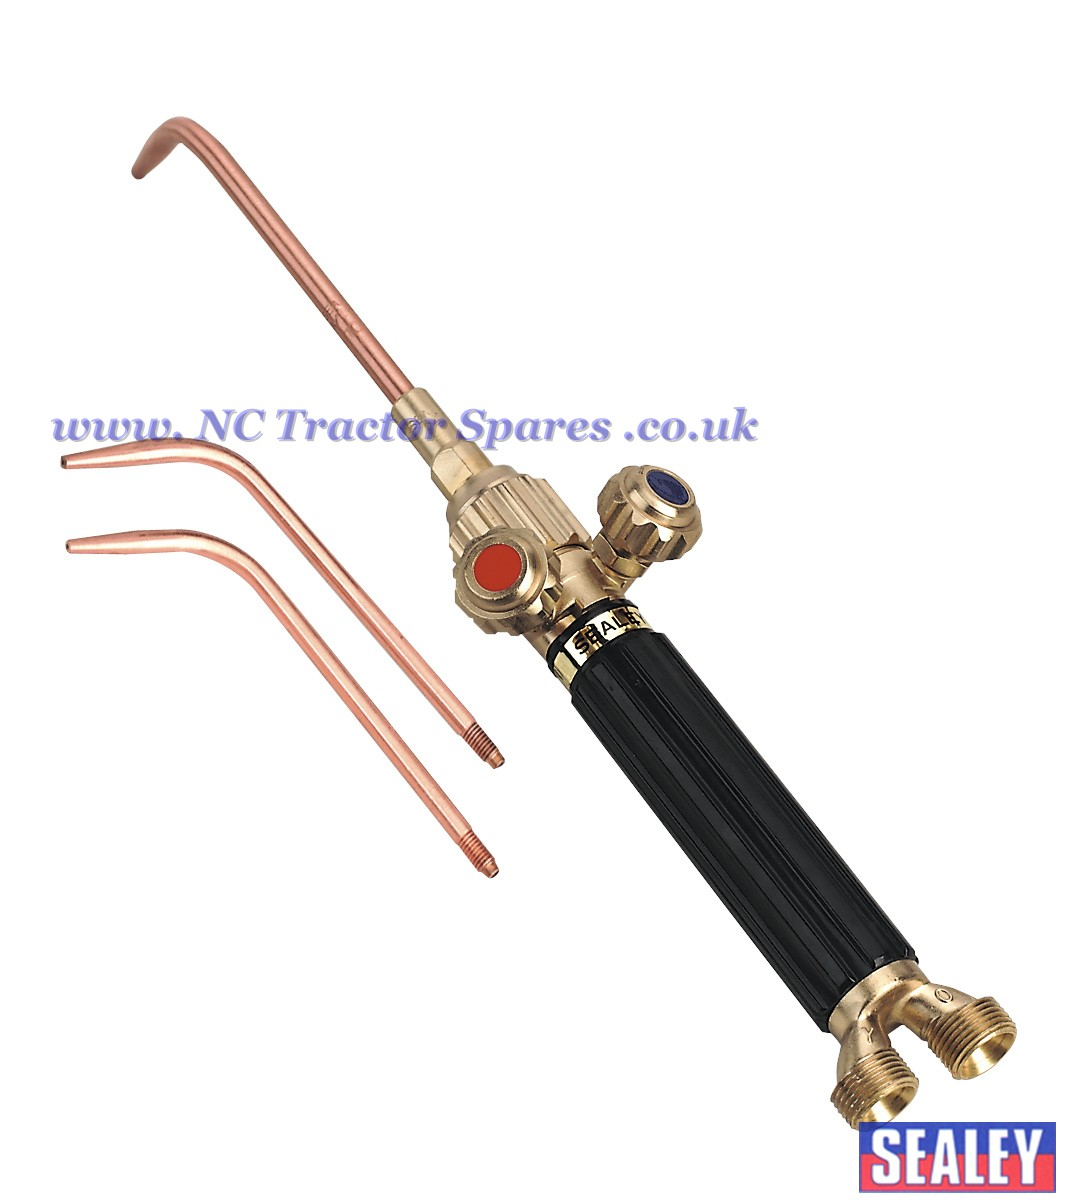 oxyacetylene welding torch set